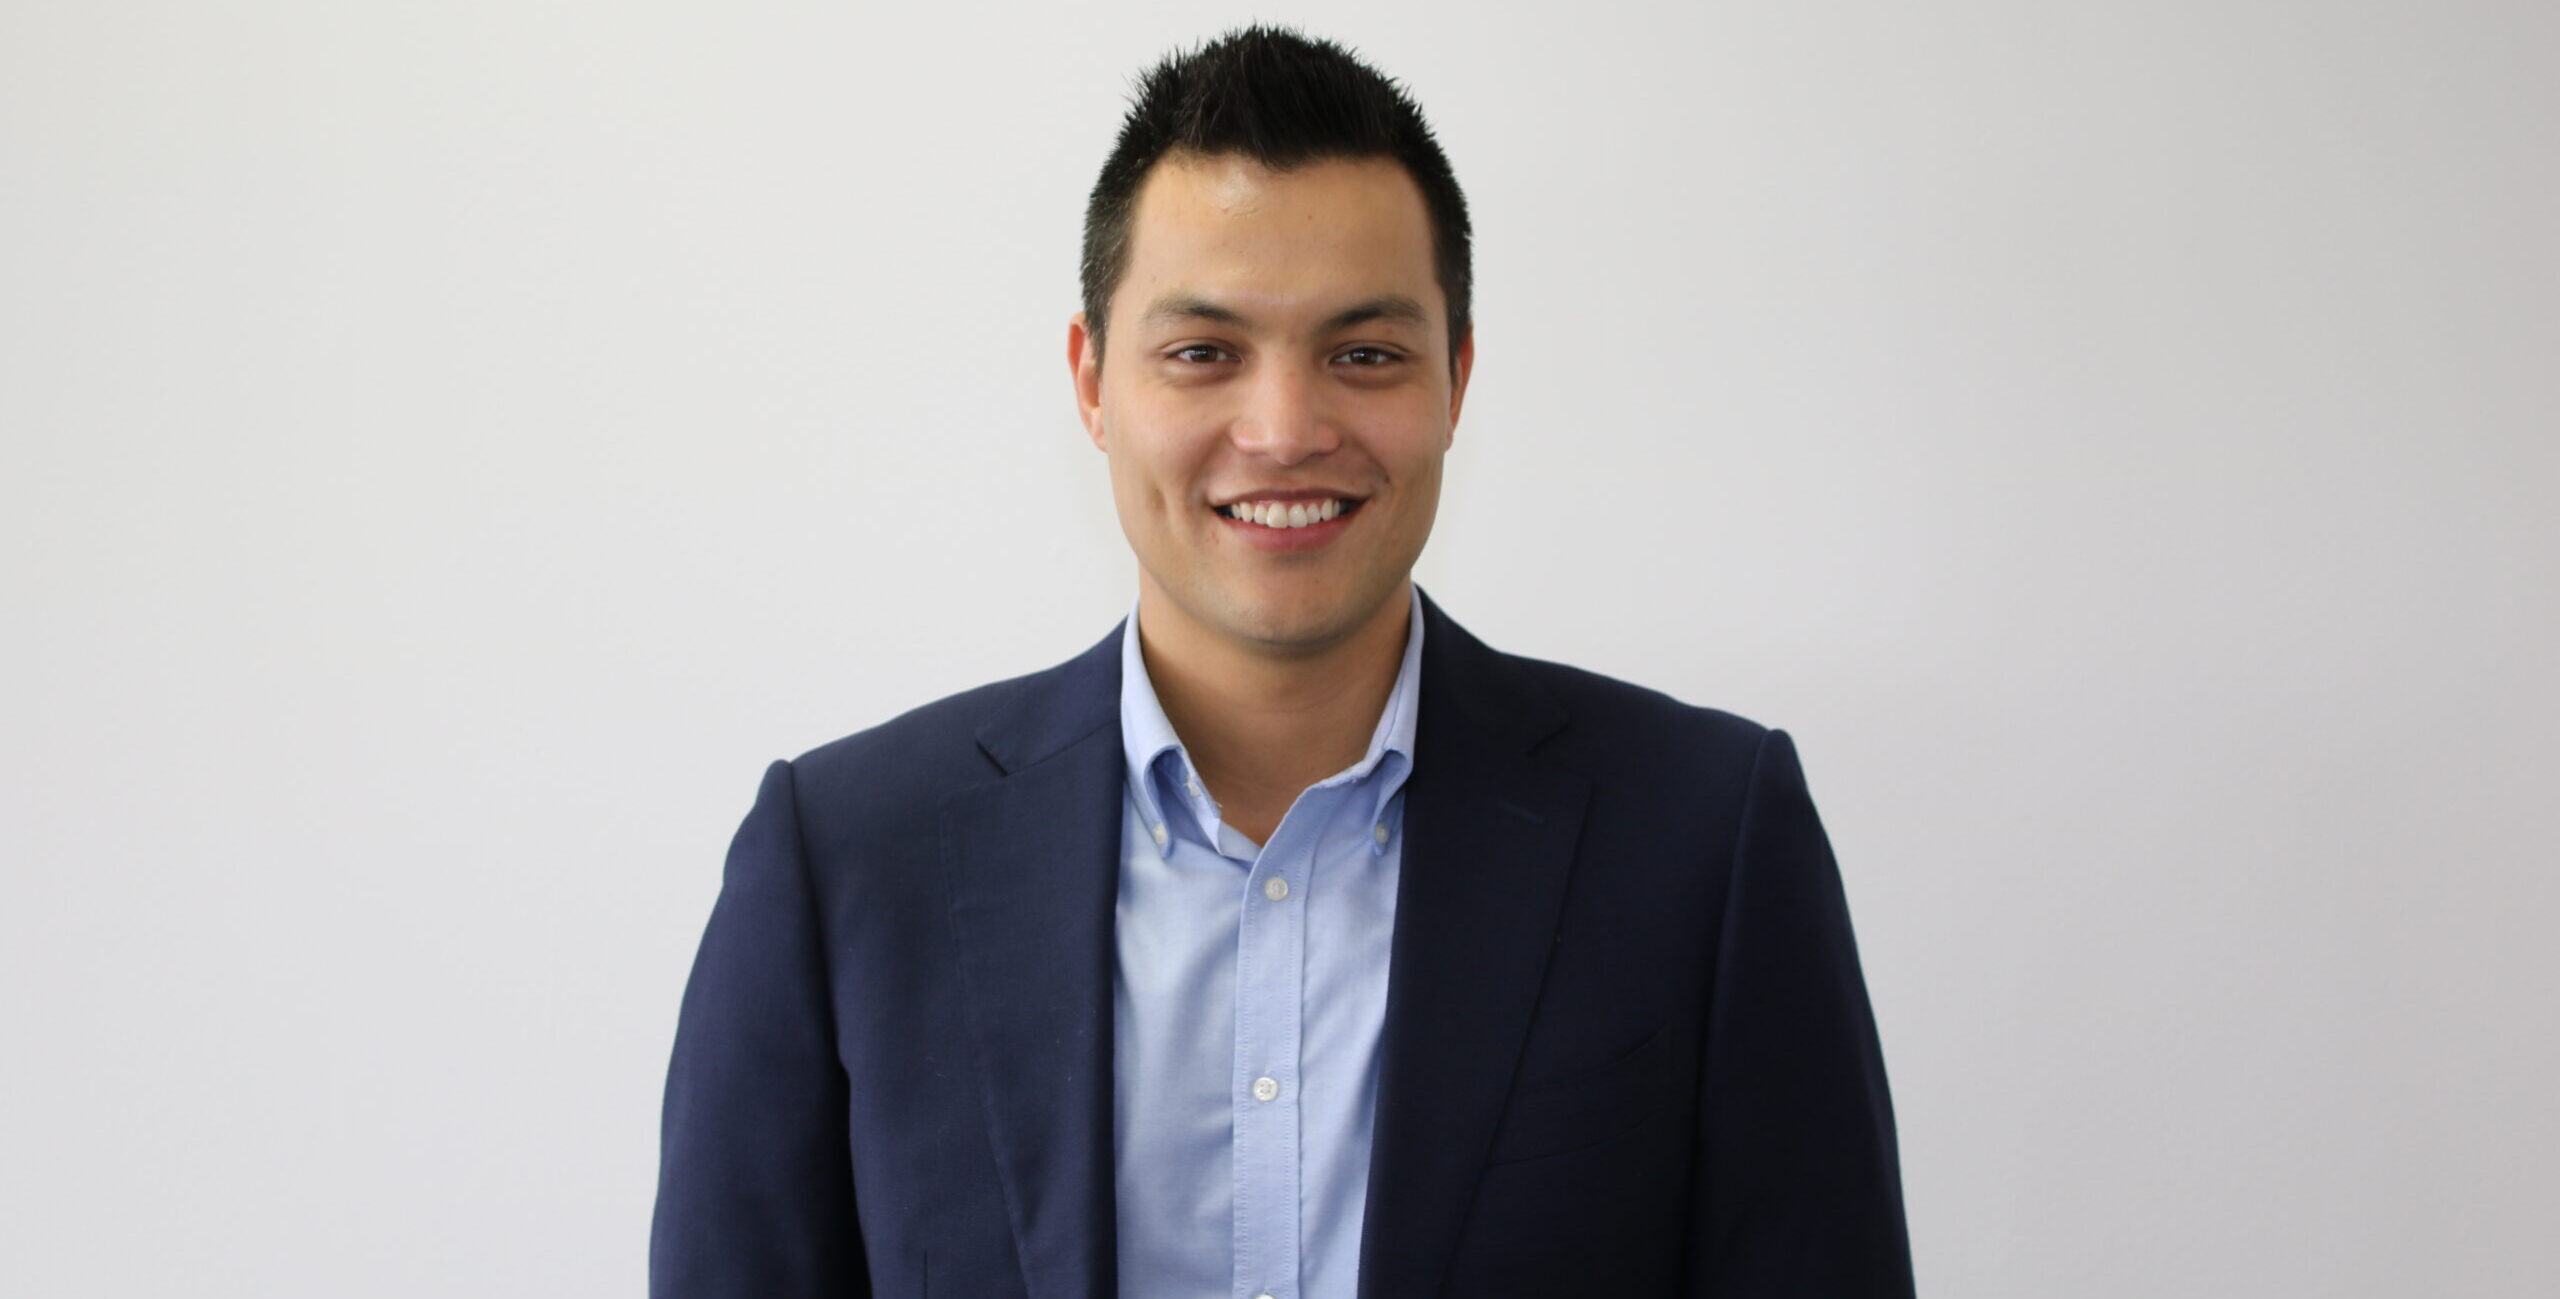 Congratulations to Mark Chiu, our newest Professional Engineer!